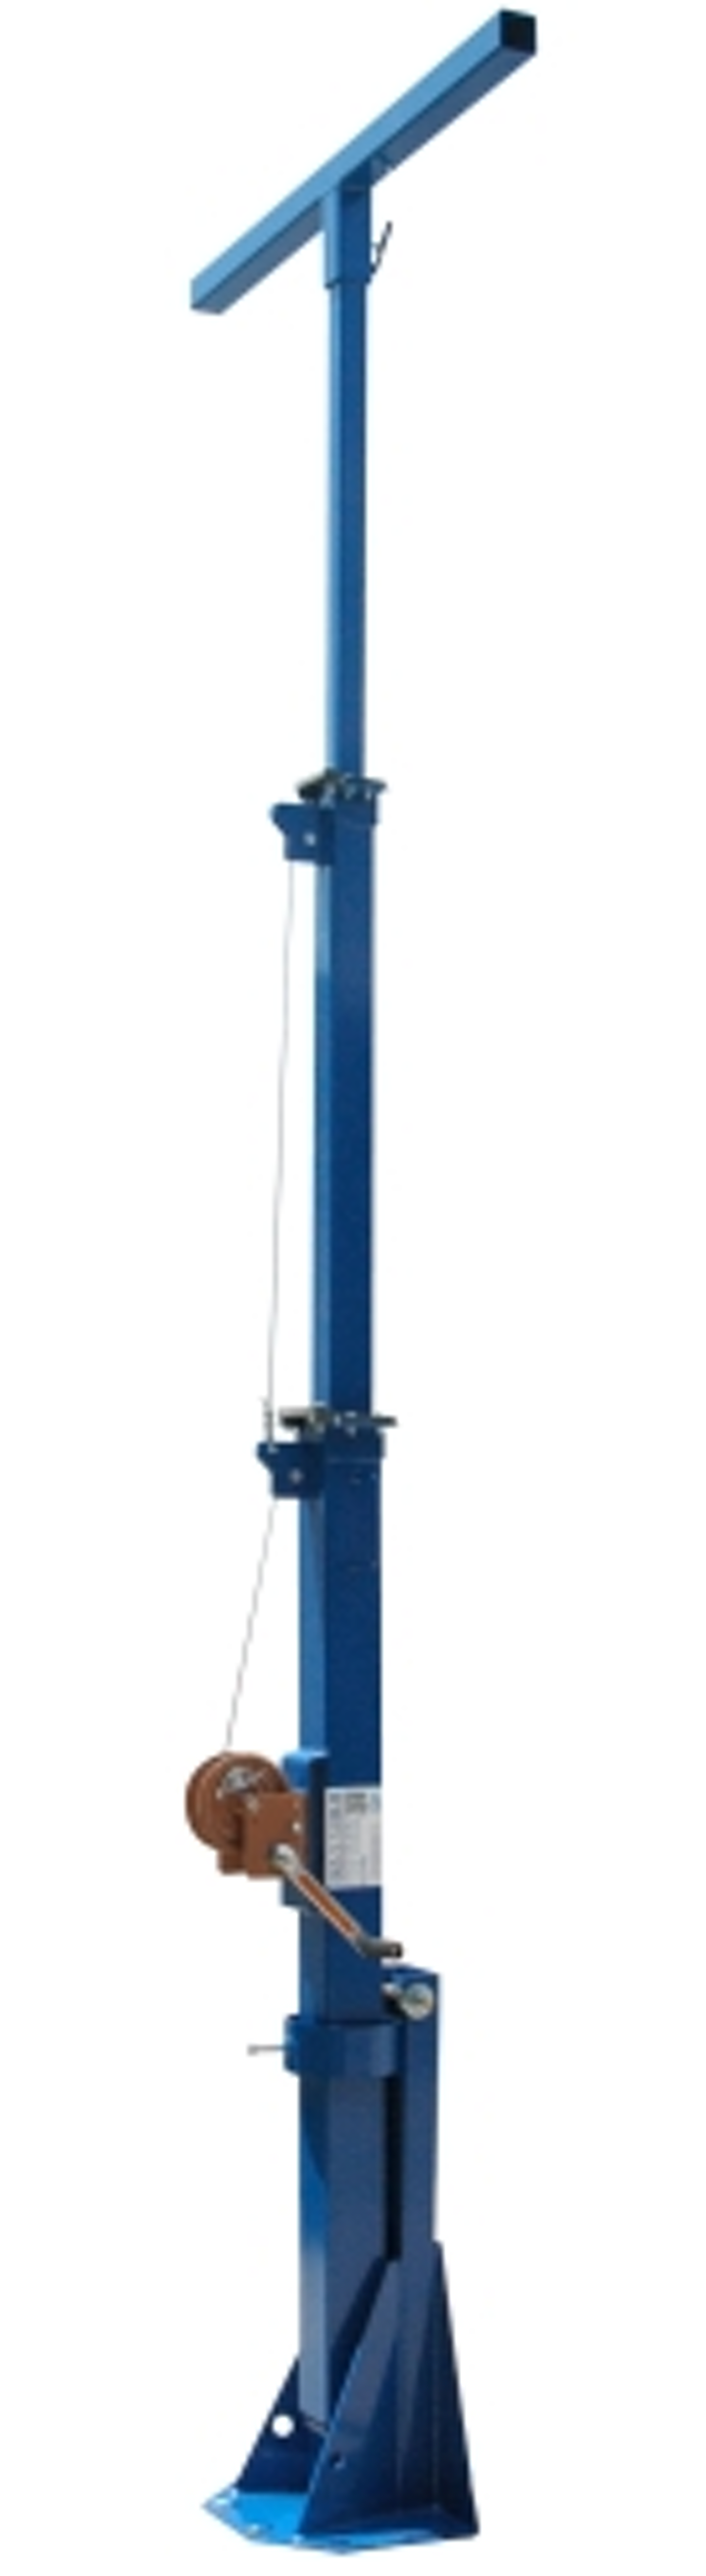 Larson Electronics releases a 15-ft telescoping mini light mast equipped with a 400W LED light source